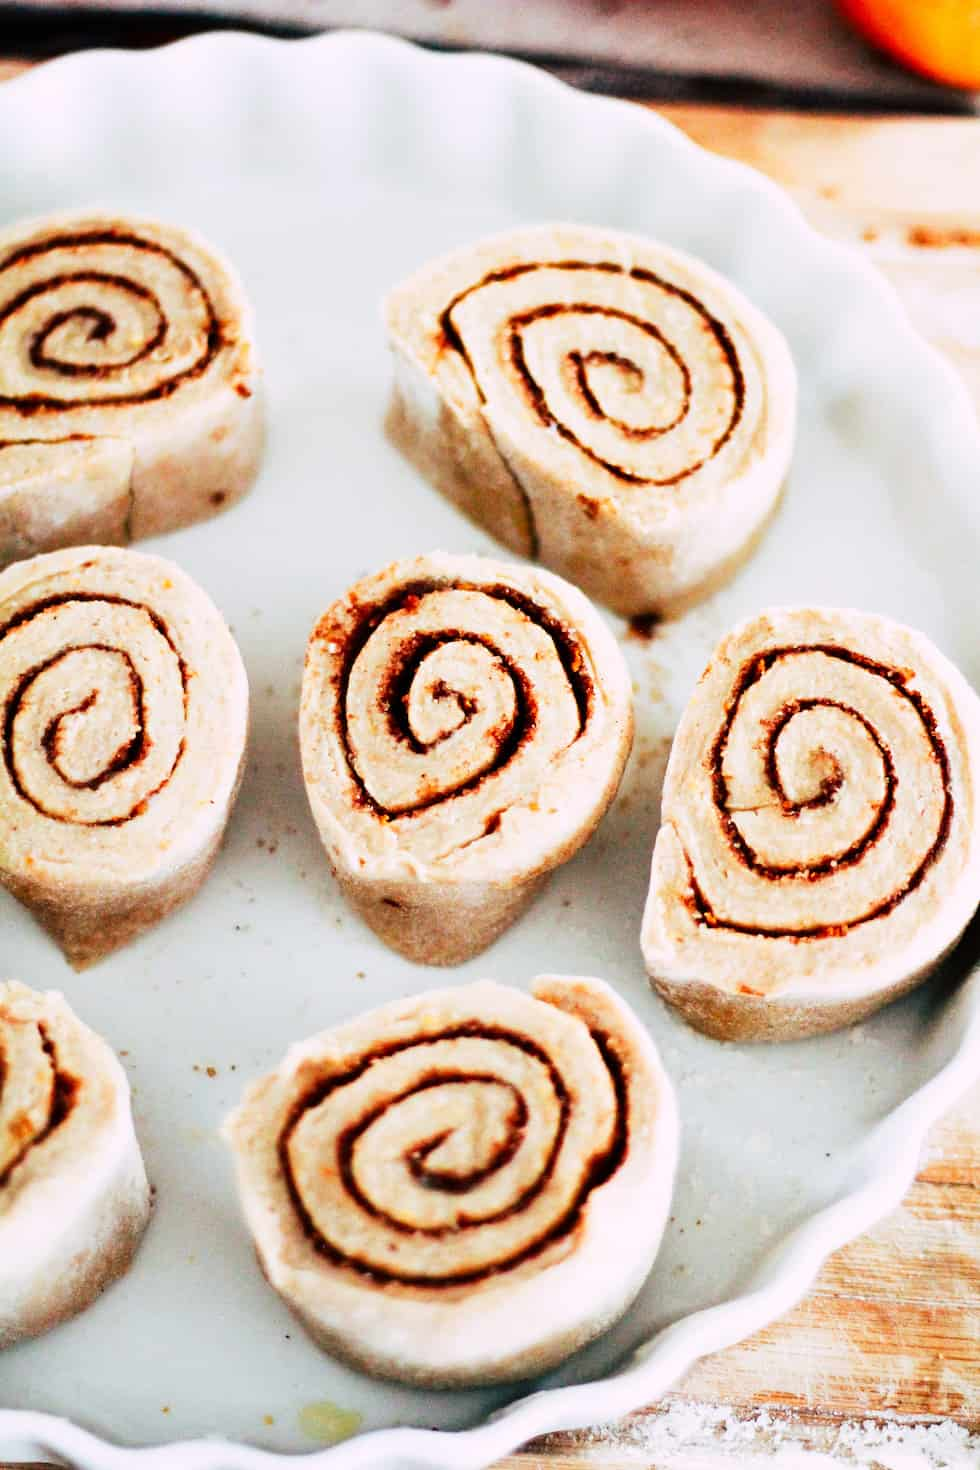 Uncooked cinnamon rolls in a white baking dish.